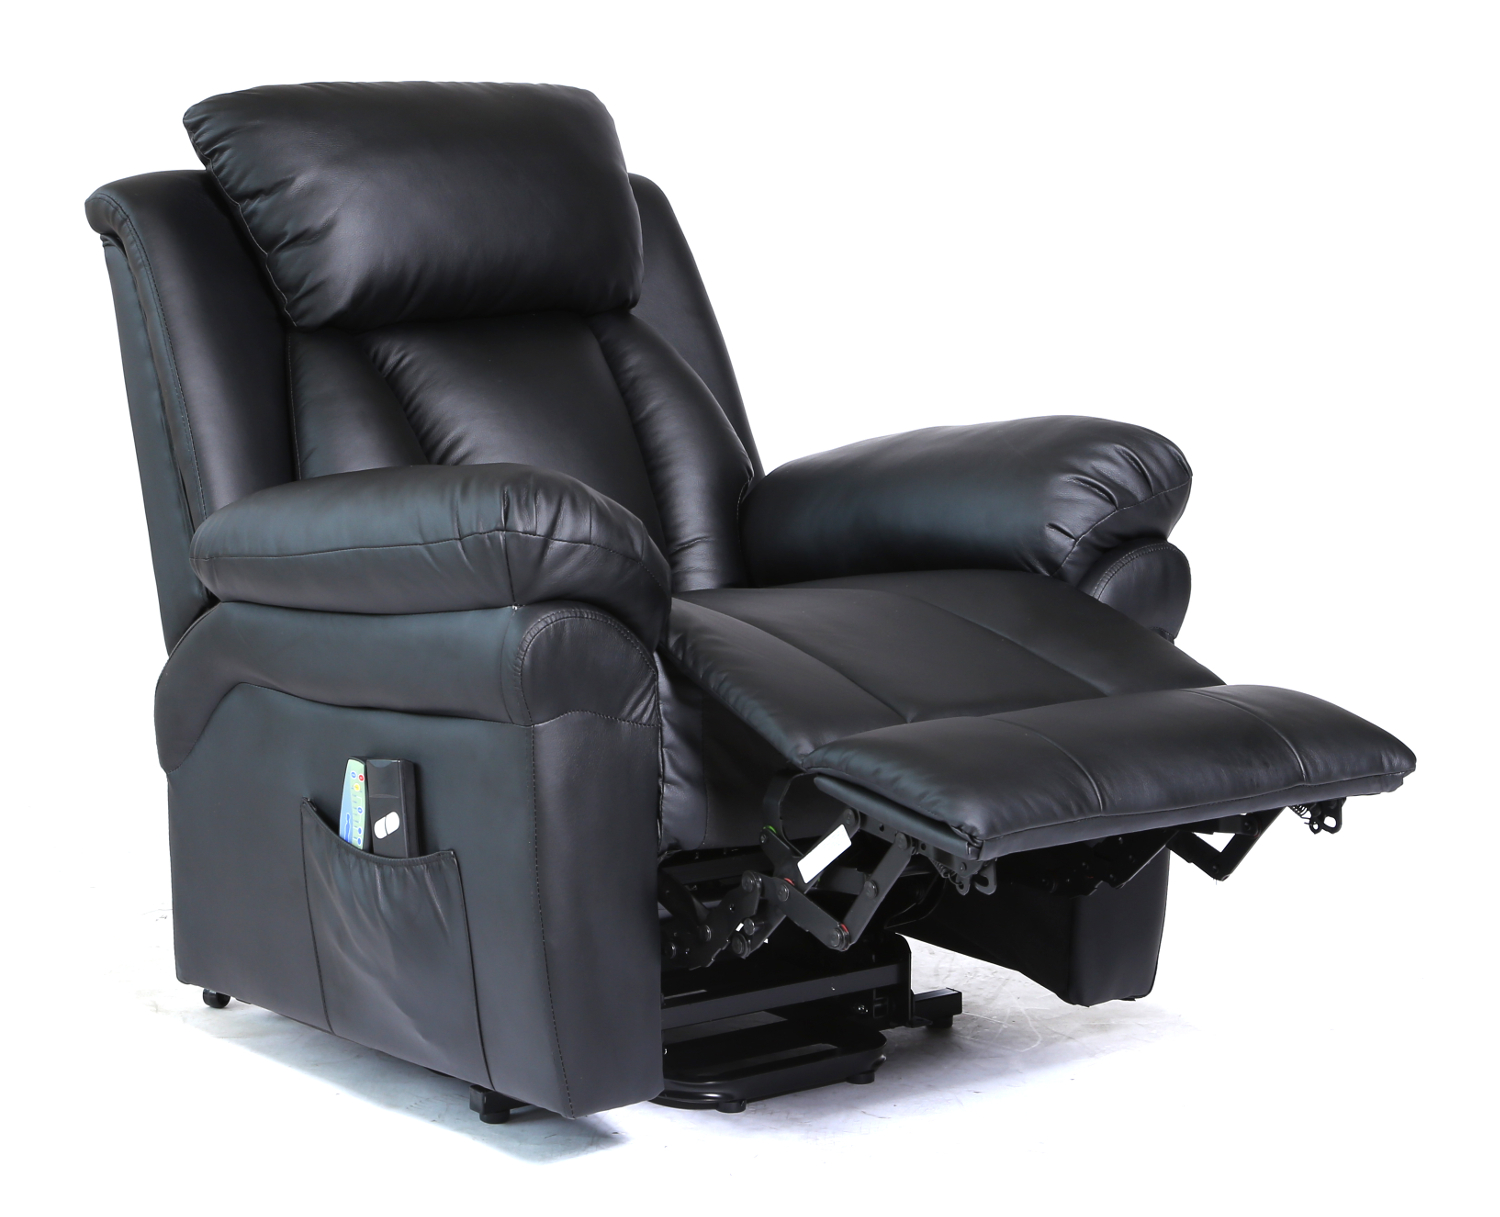 lift recliner chairs for sale outdoor circle chair 10 in 1 massage swivel and power